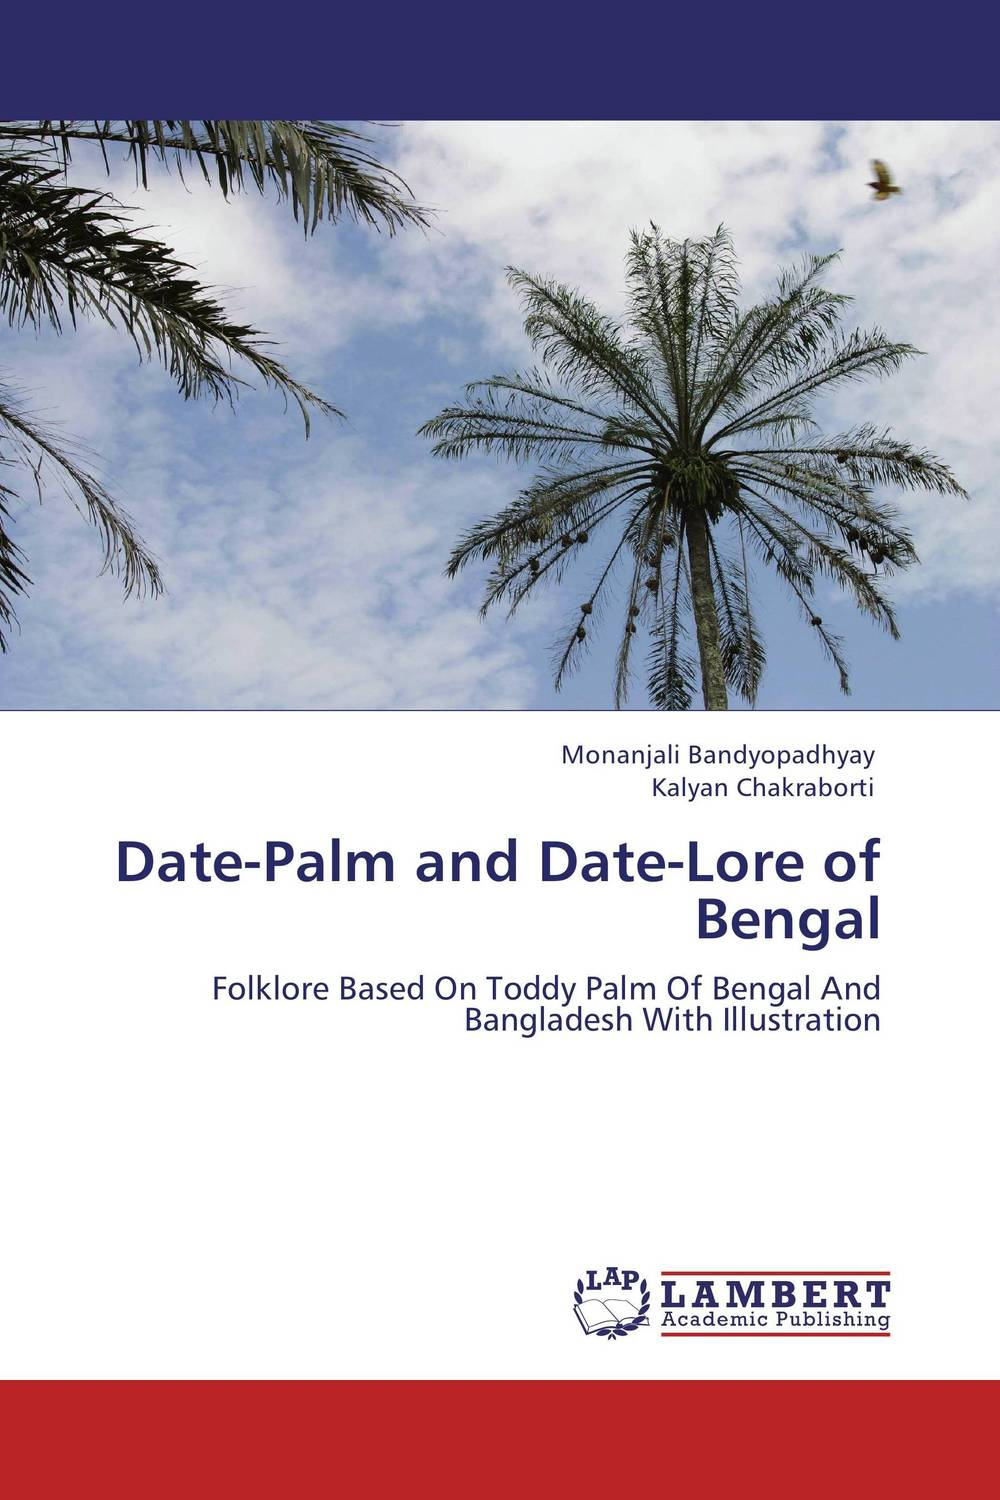 Date-Palm and Date-Lore of Bengal folk of the world paraguay